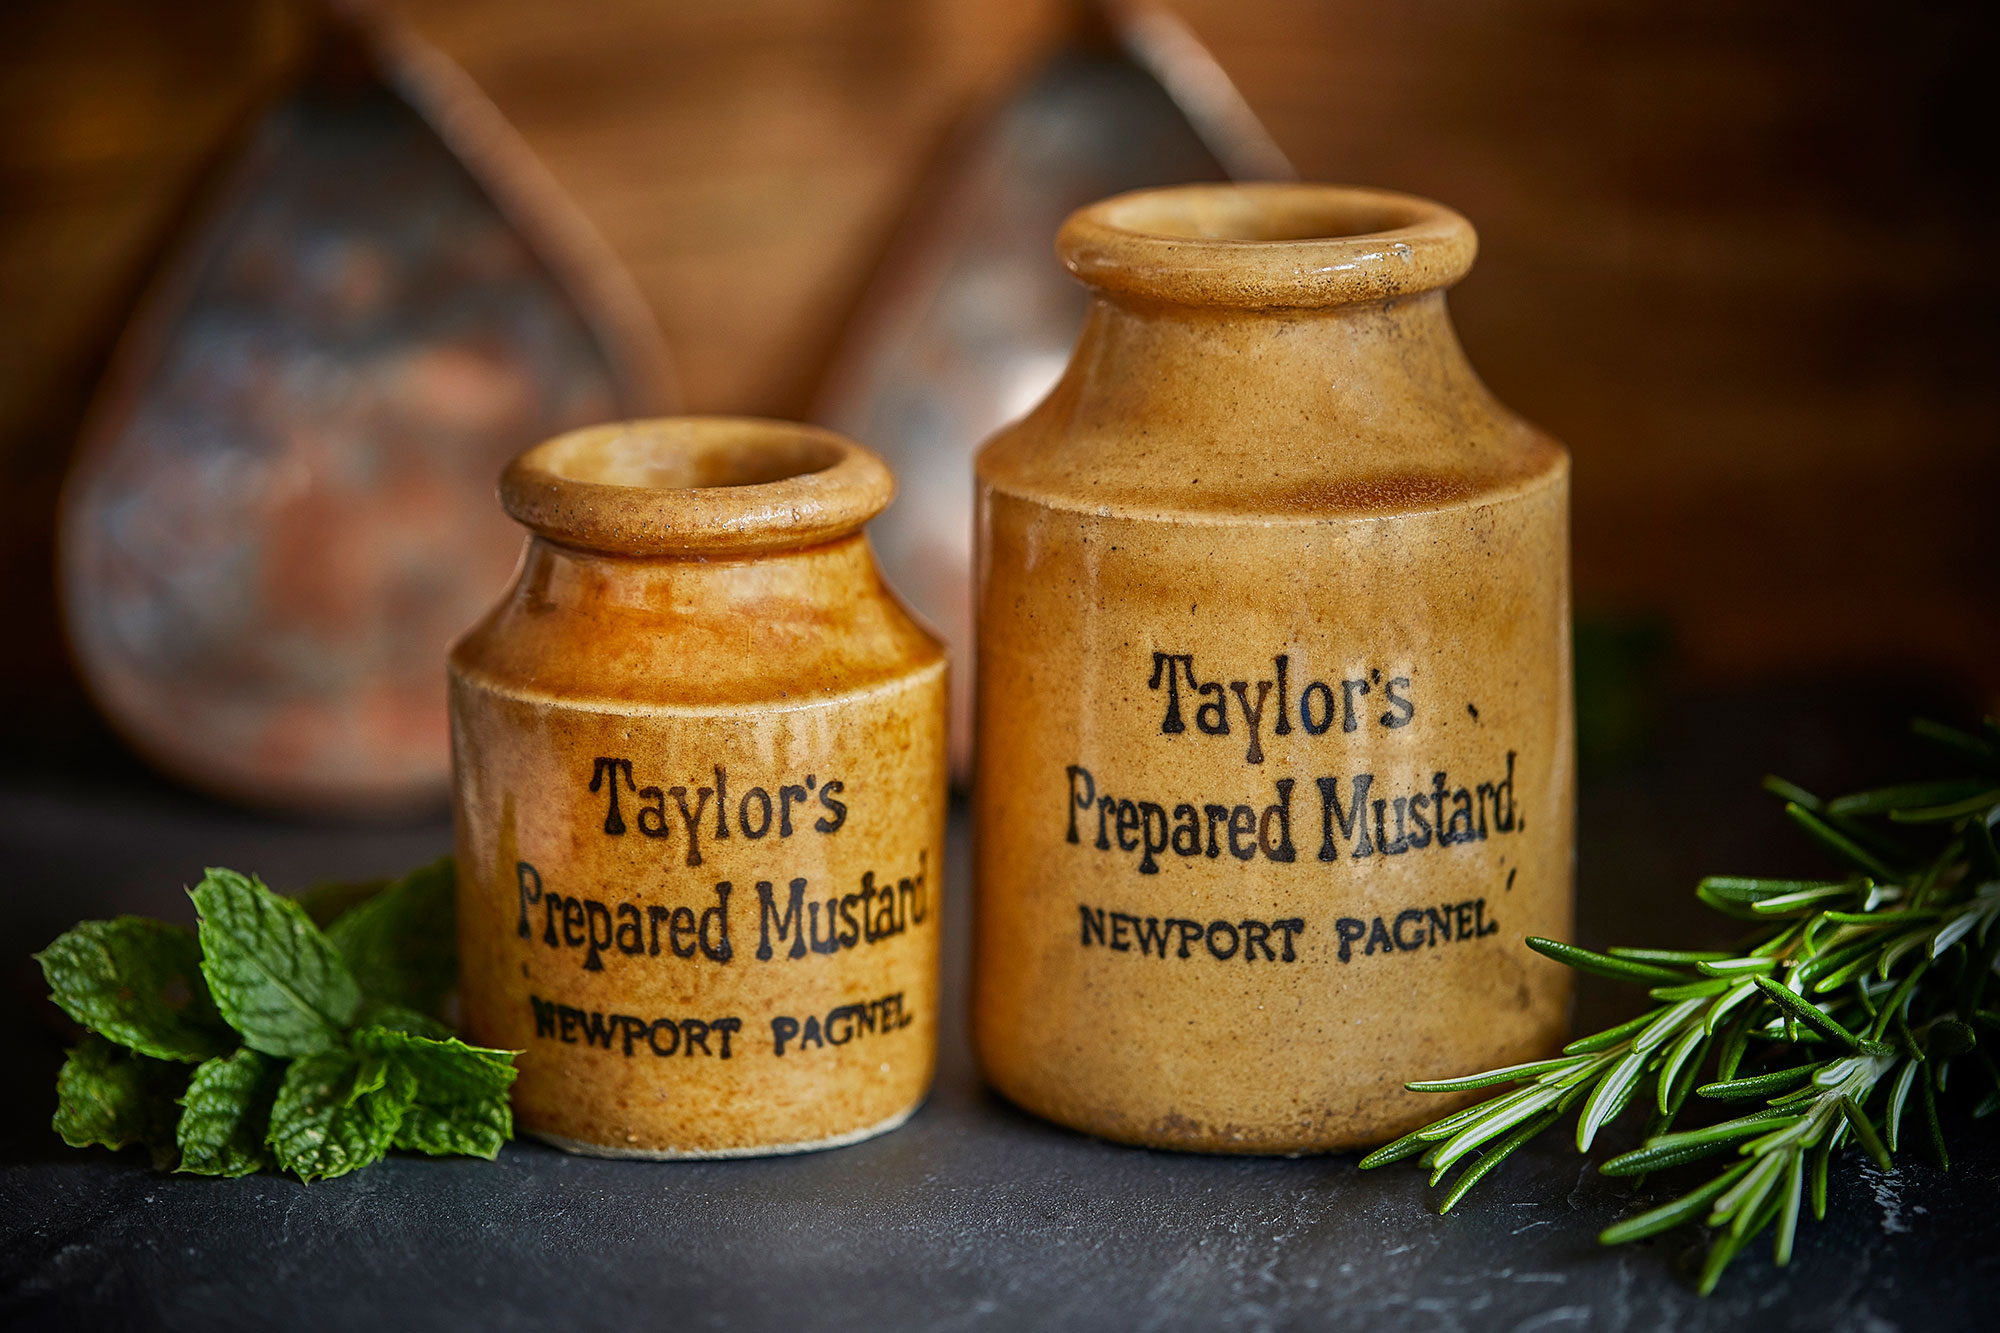 Taylors Mustard, the original and still the best, as made in Newport Pagnell